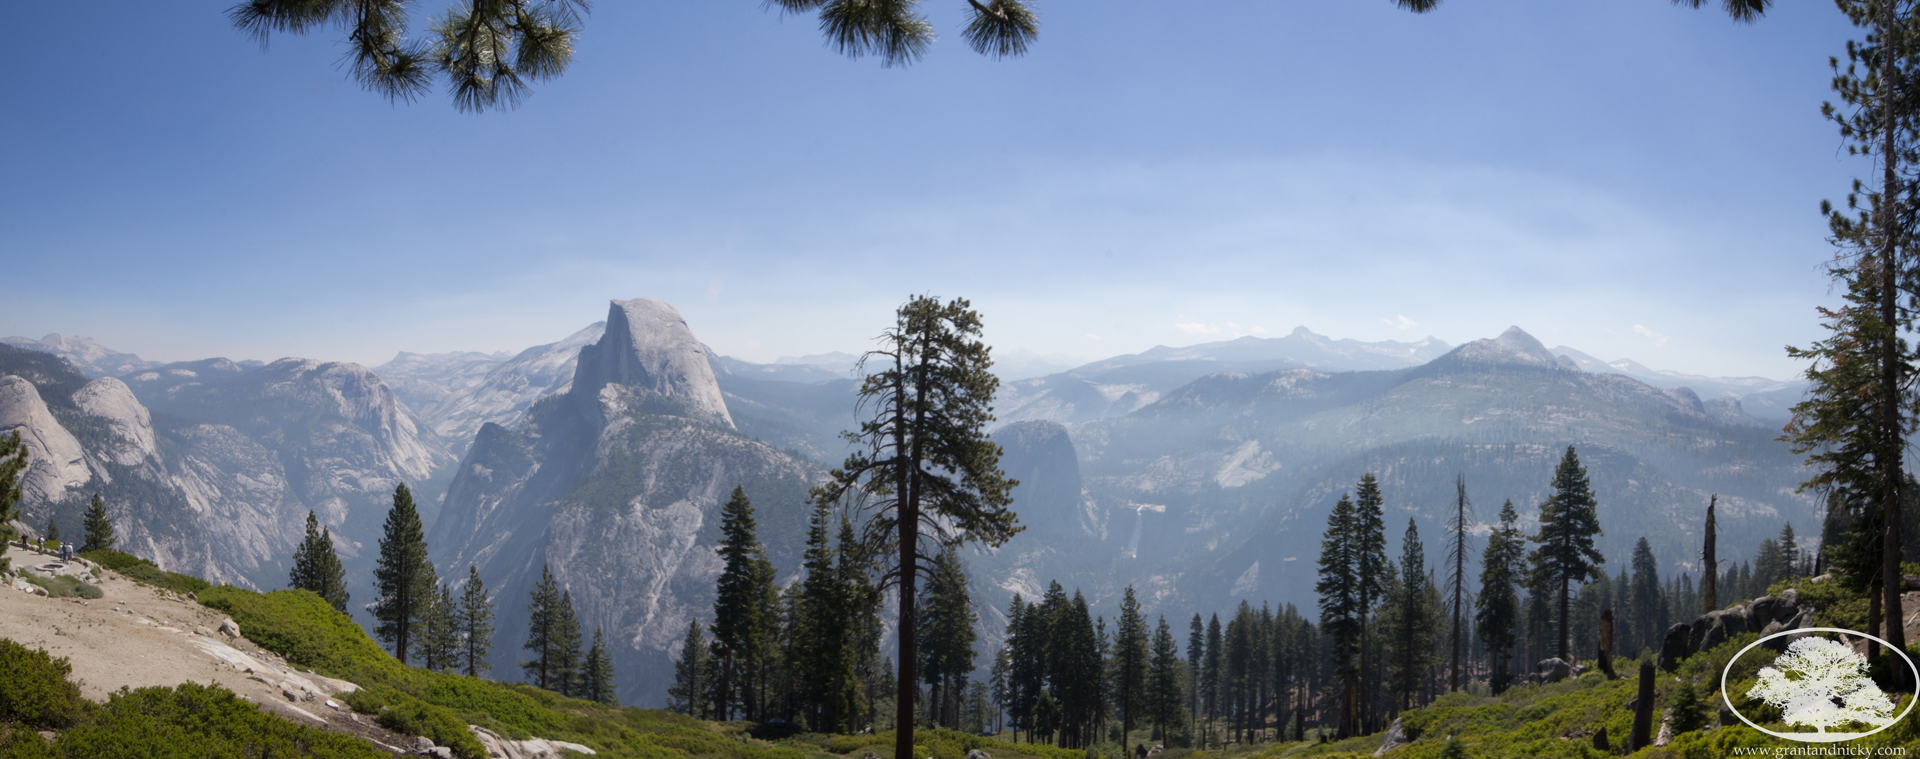 Yosemite National Park – Panorama Trail